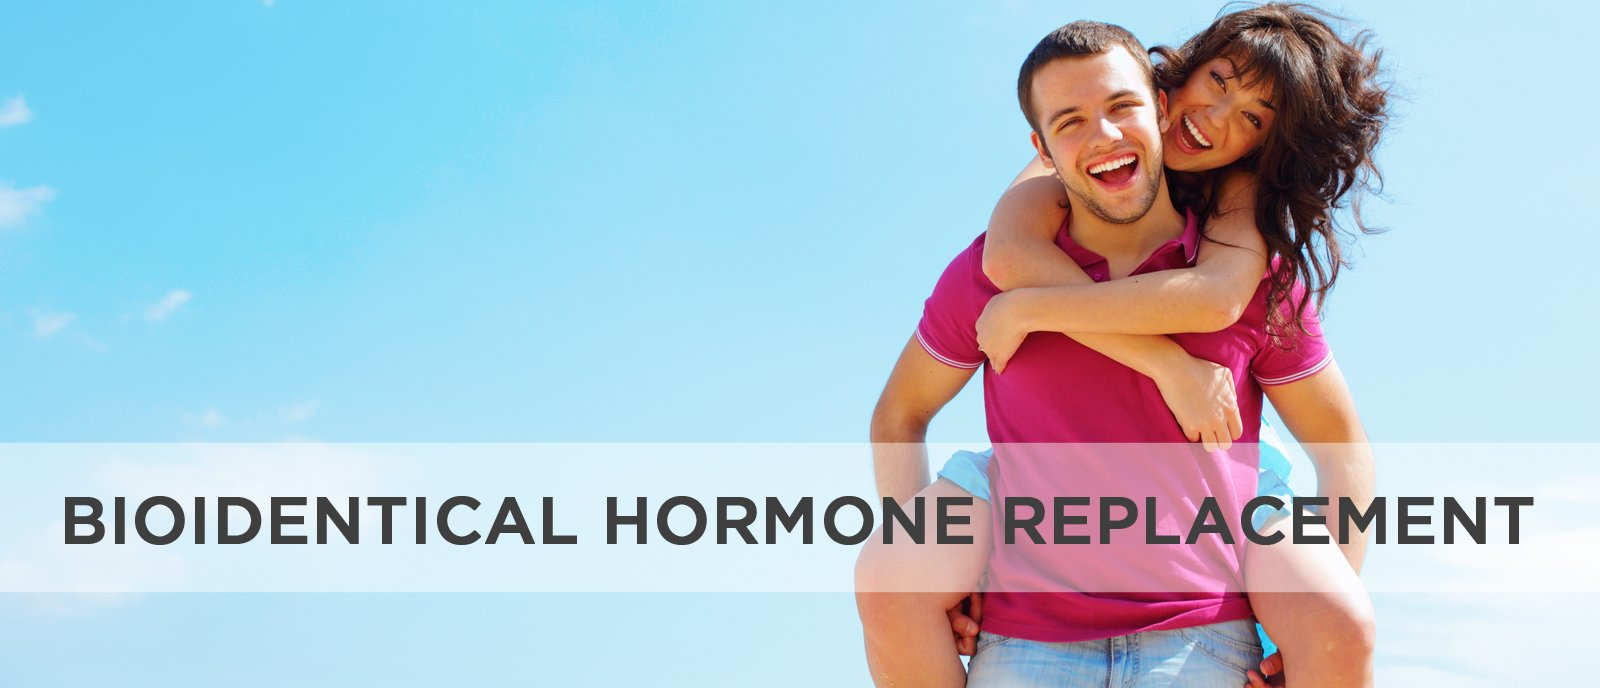 Bioidentical Hormone Replacement